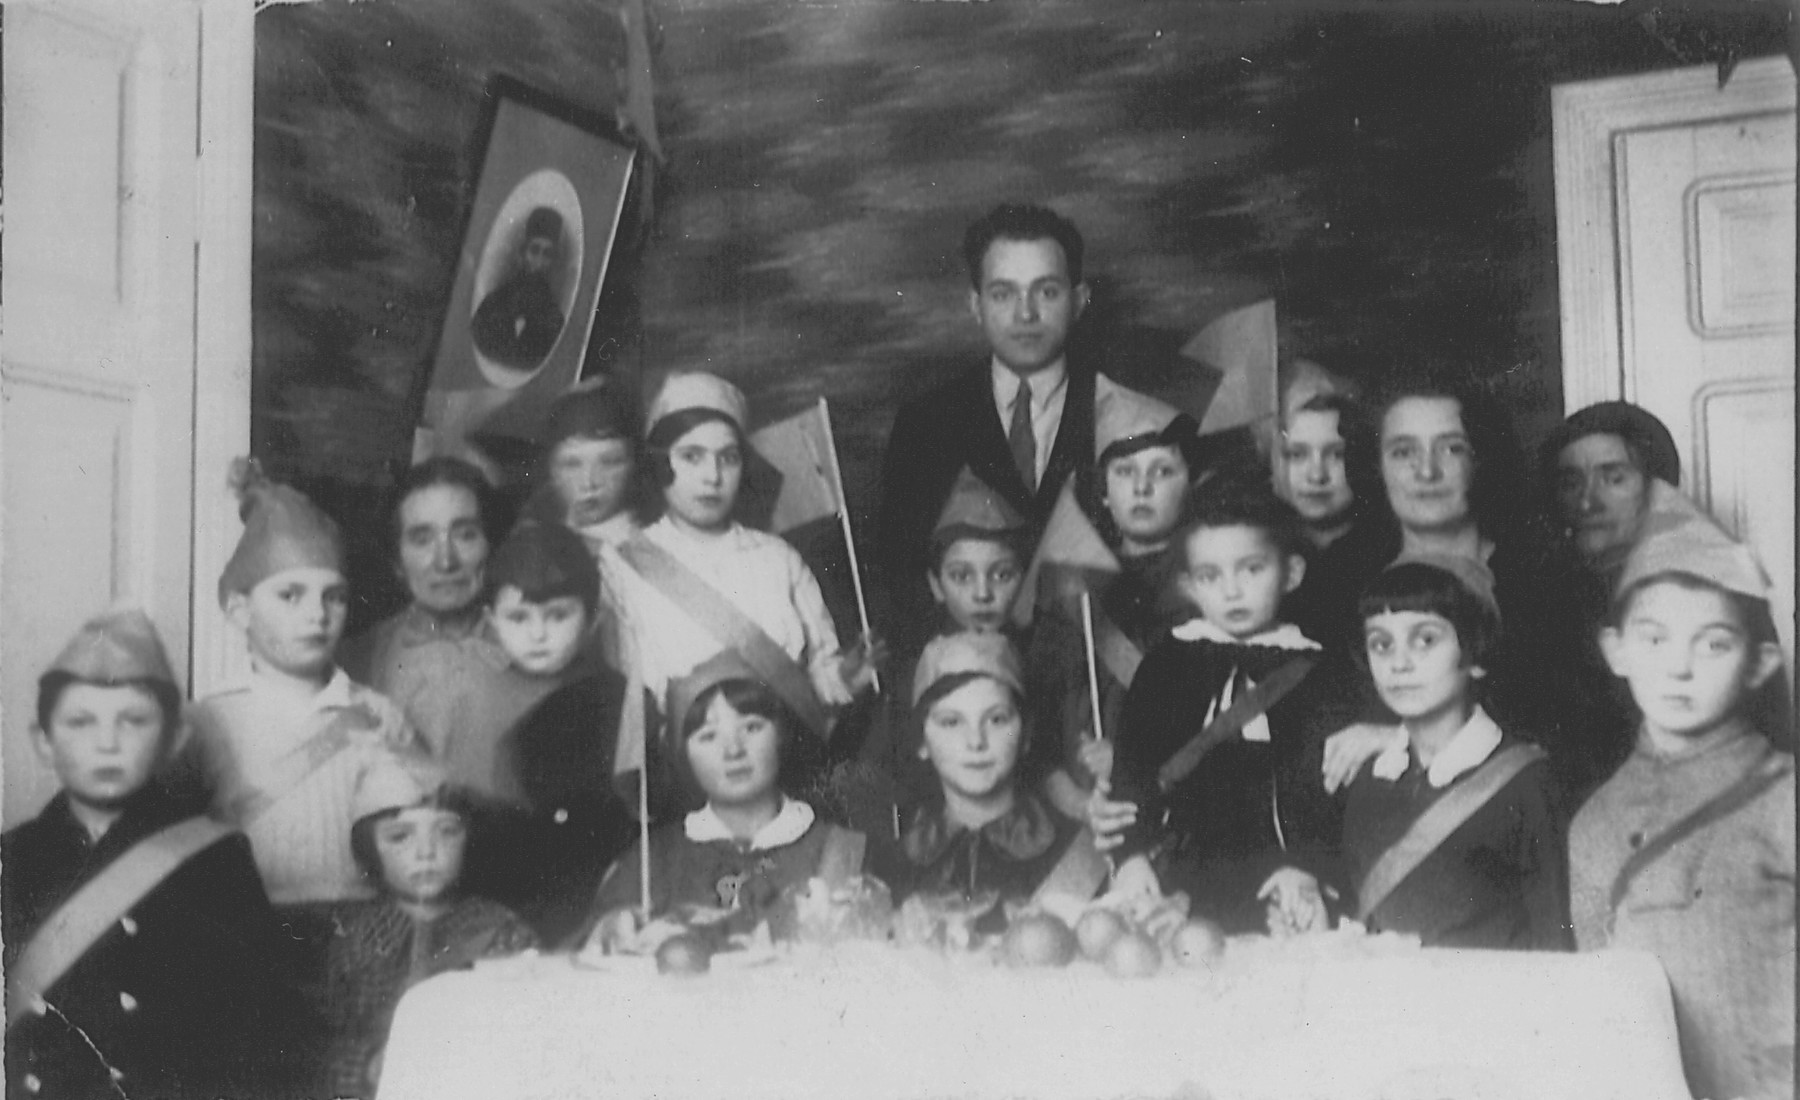 Lejb Melamdowicz's third birthday, Bialystok, 1935.   Melamed's father (center), grandmother and mother (far left and far right, respectively) join a group of children in hats and sashes around a table adorned with fruit.